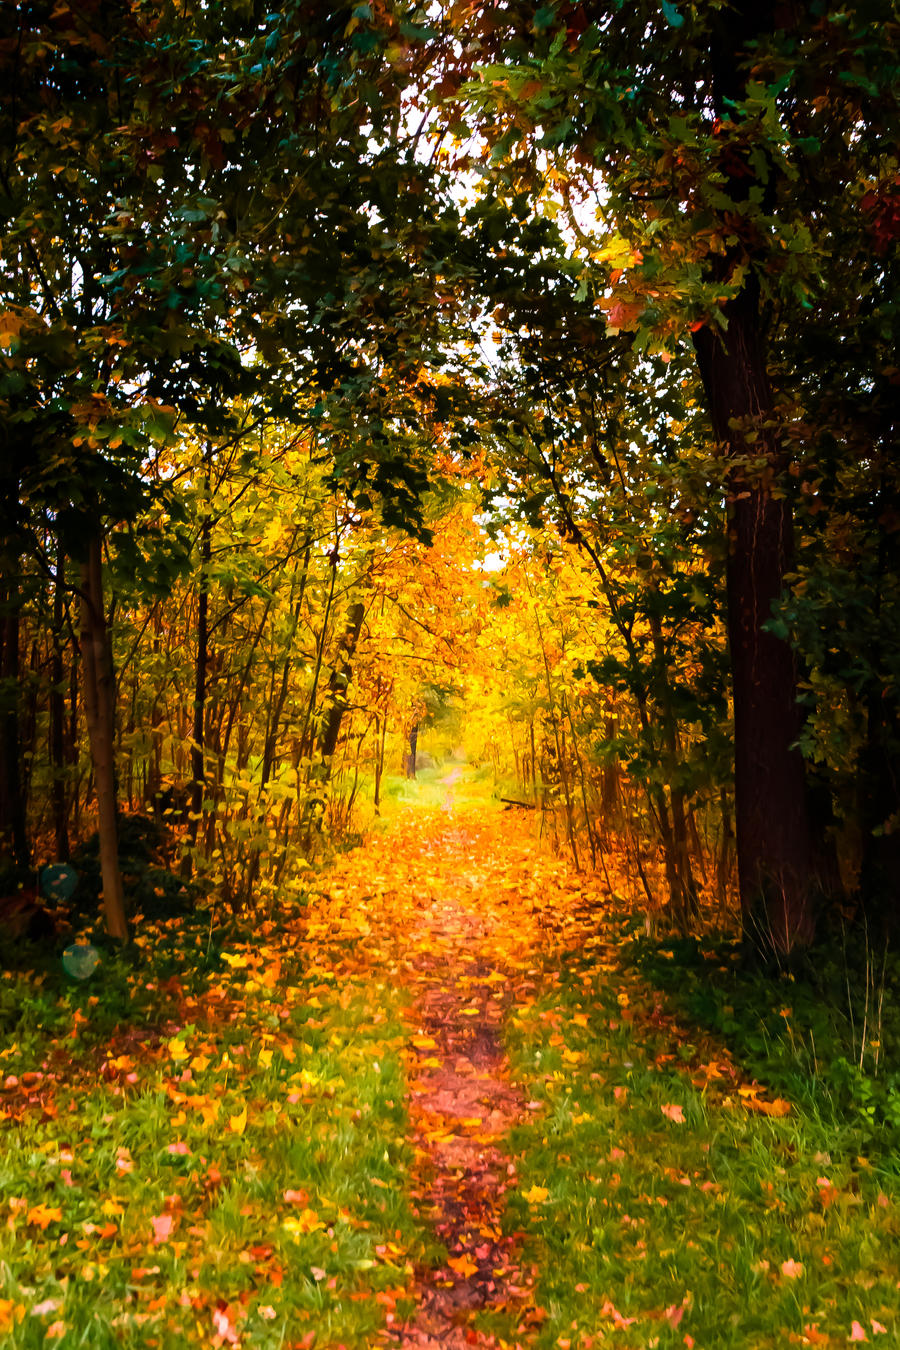 Autumn Corridor by Awstein